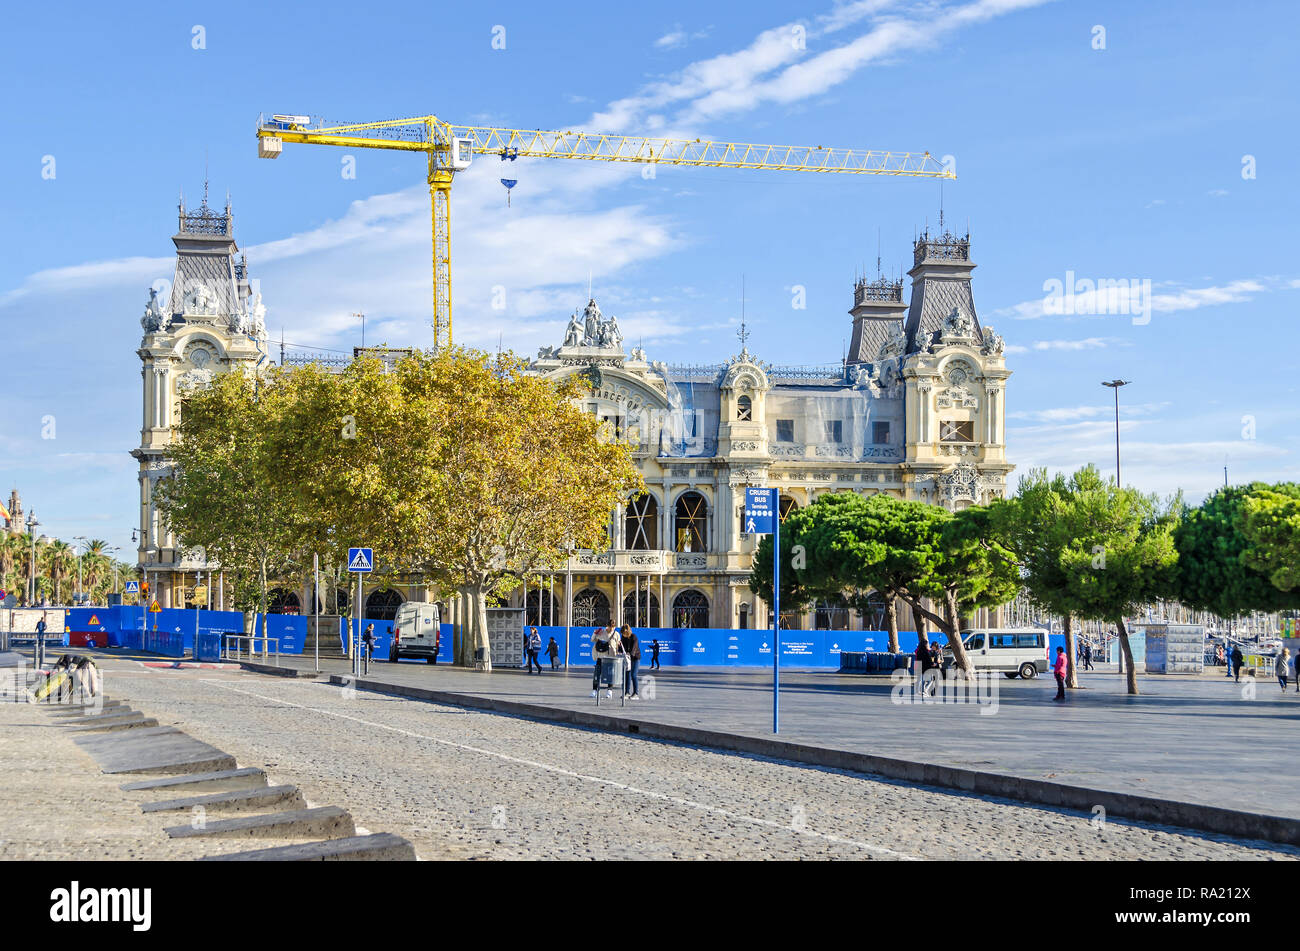 Barcelona, Spain - November 10, 2018:  Old Port Authority building at the base of Rambla del Mar of the Port Vell under renovation - Stock Image